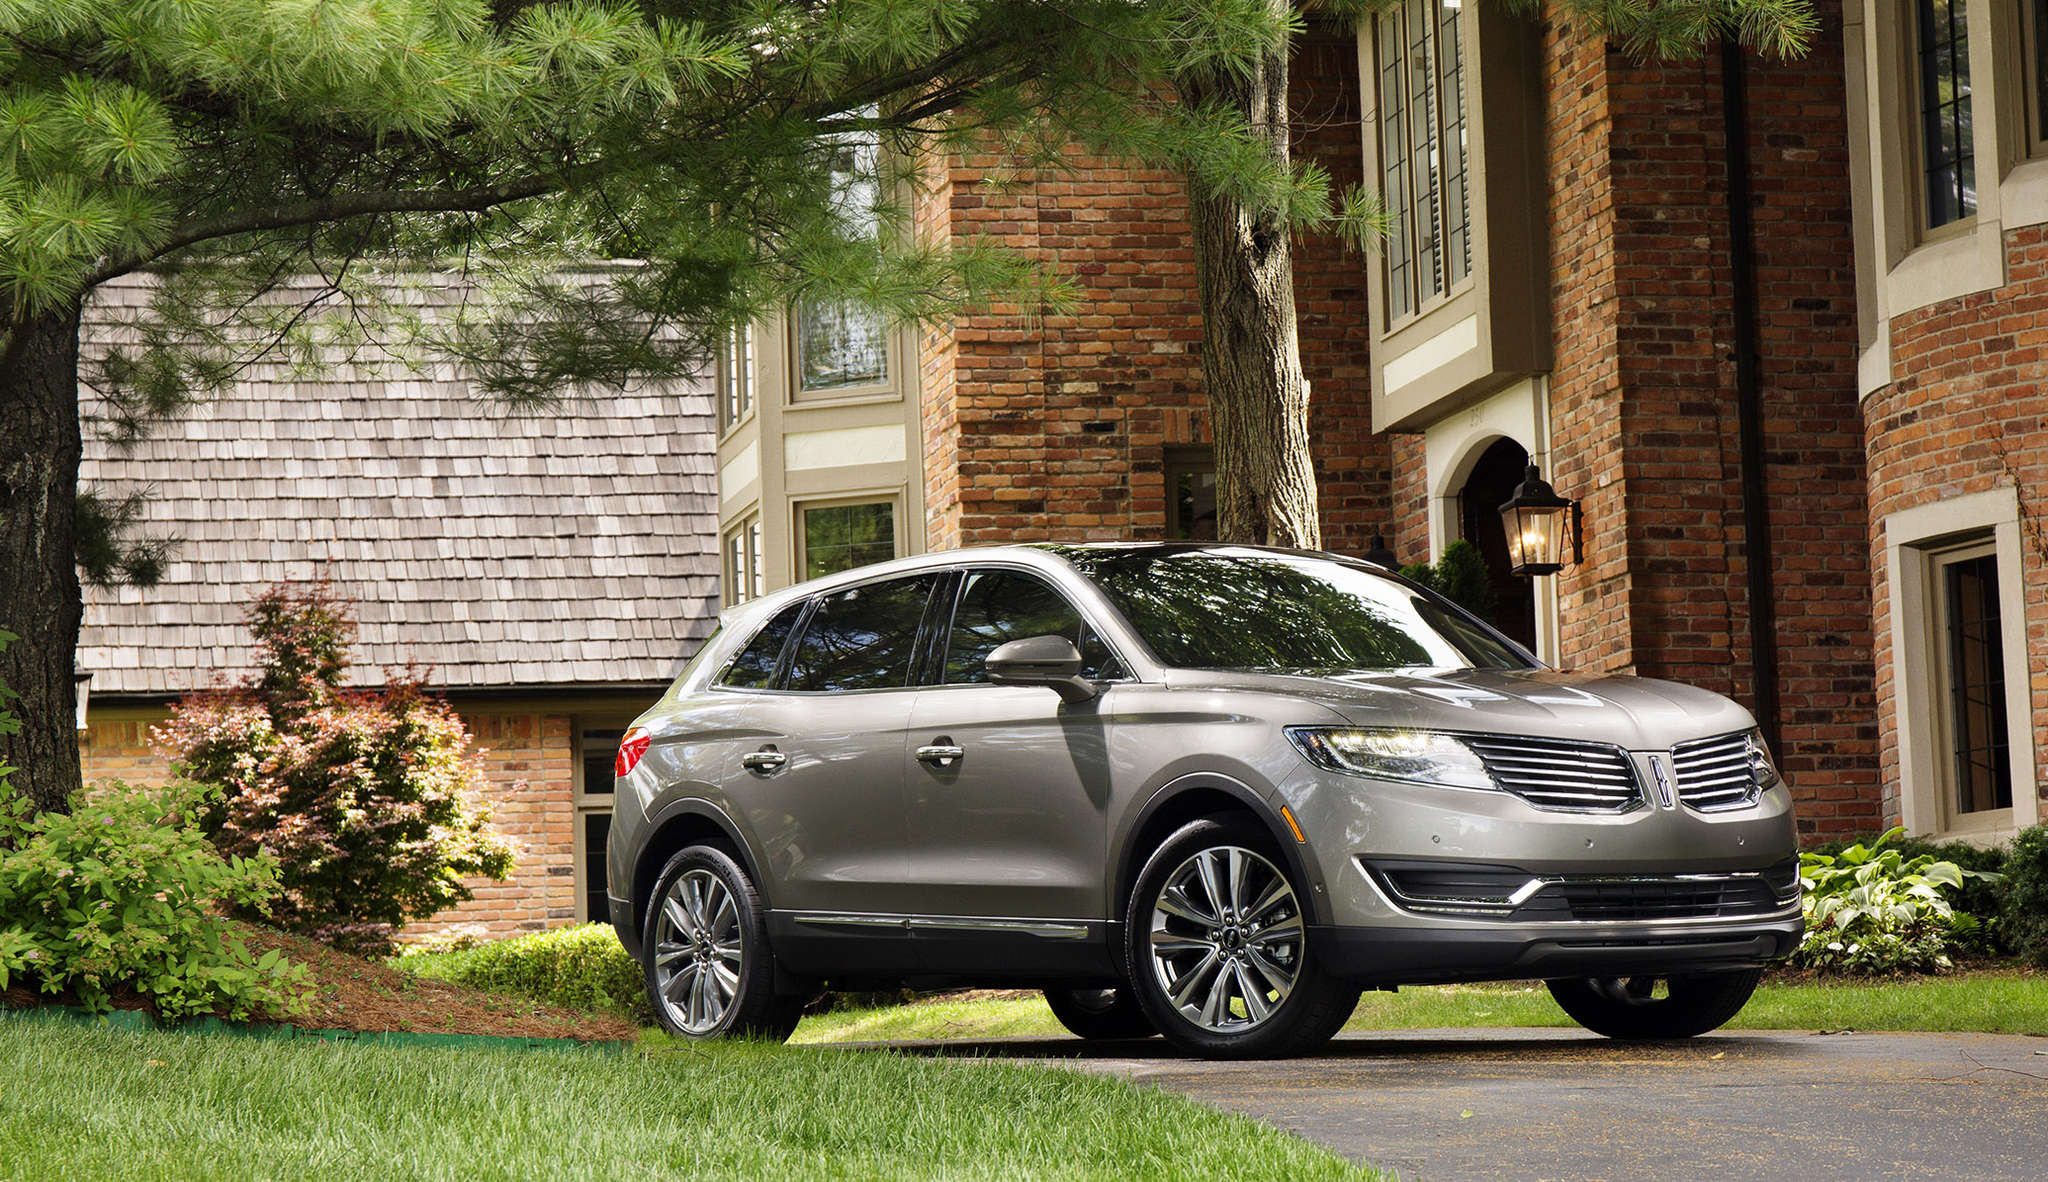 Lincoln´s sales are rising, and it´s not hard to see why after a test ride in the roomy, excellent-handling 2016 MKX.